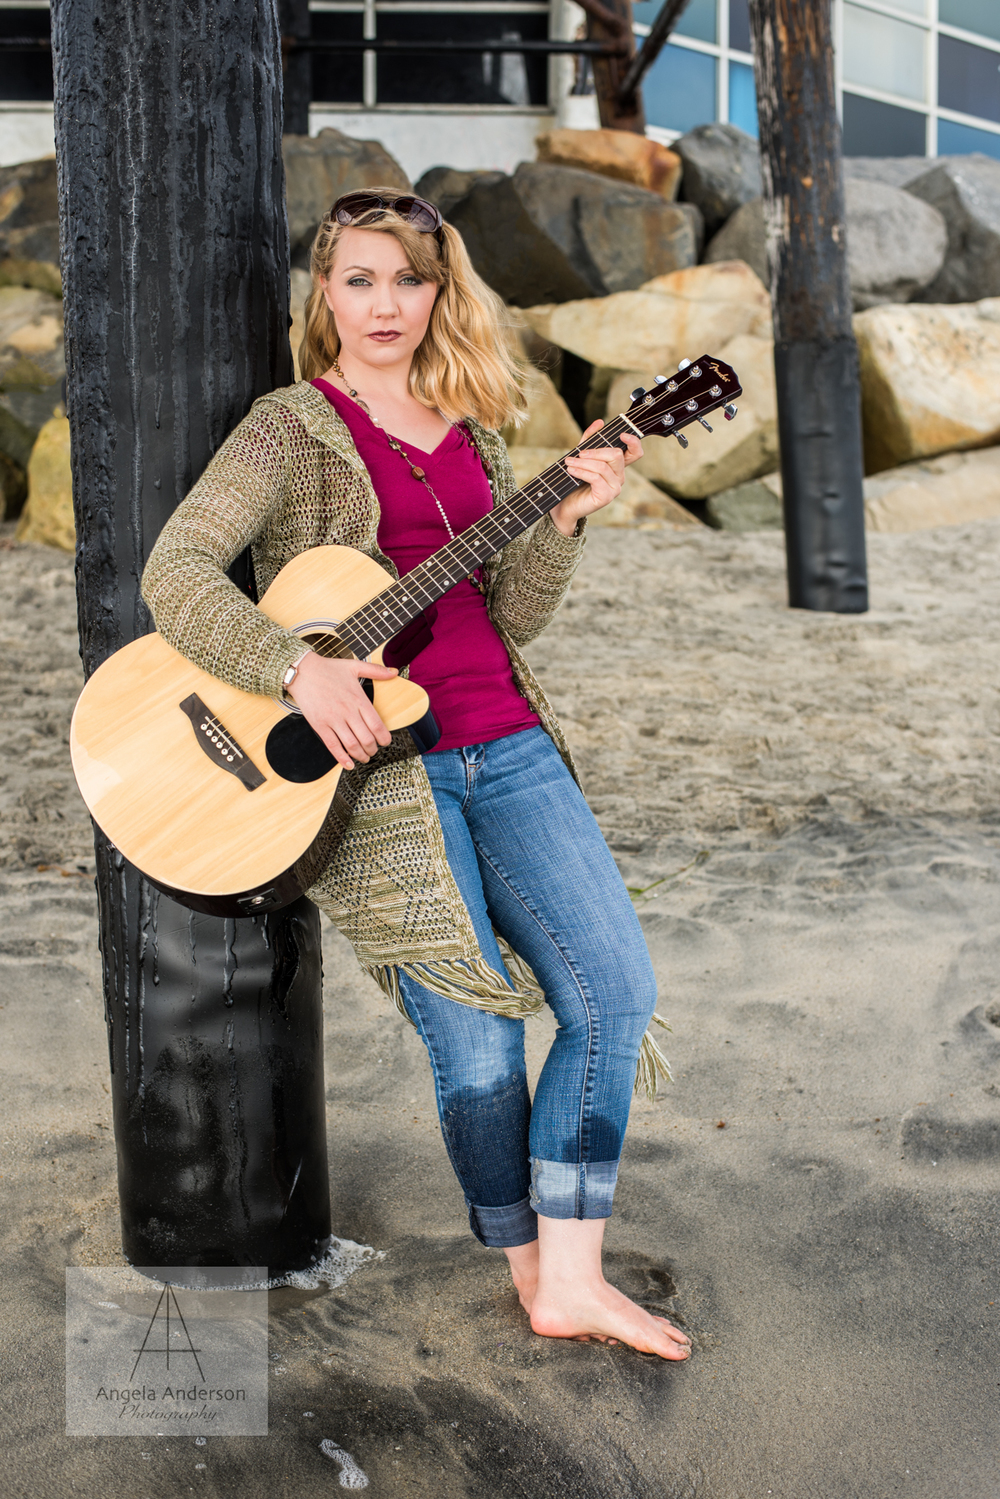 Holding her guitar under the pier at Oceanside Harbor, Becca is a stunning model for my recent photo shoot.